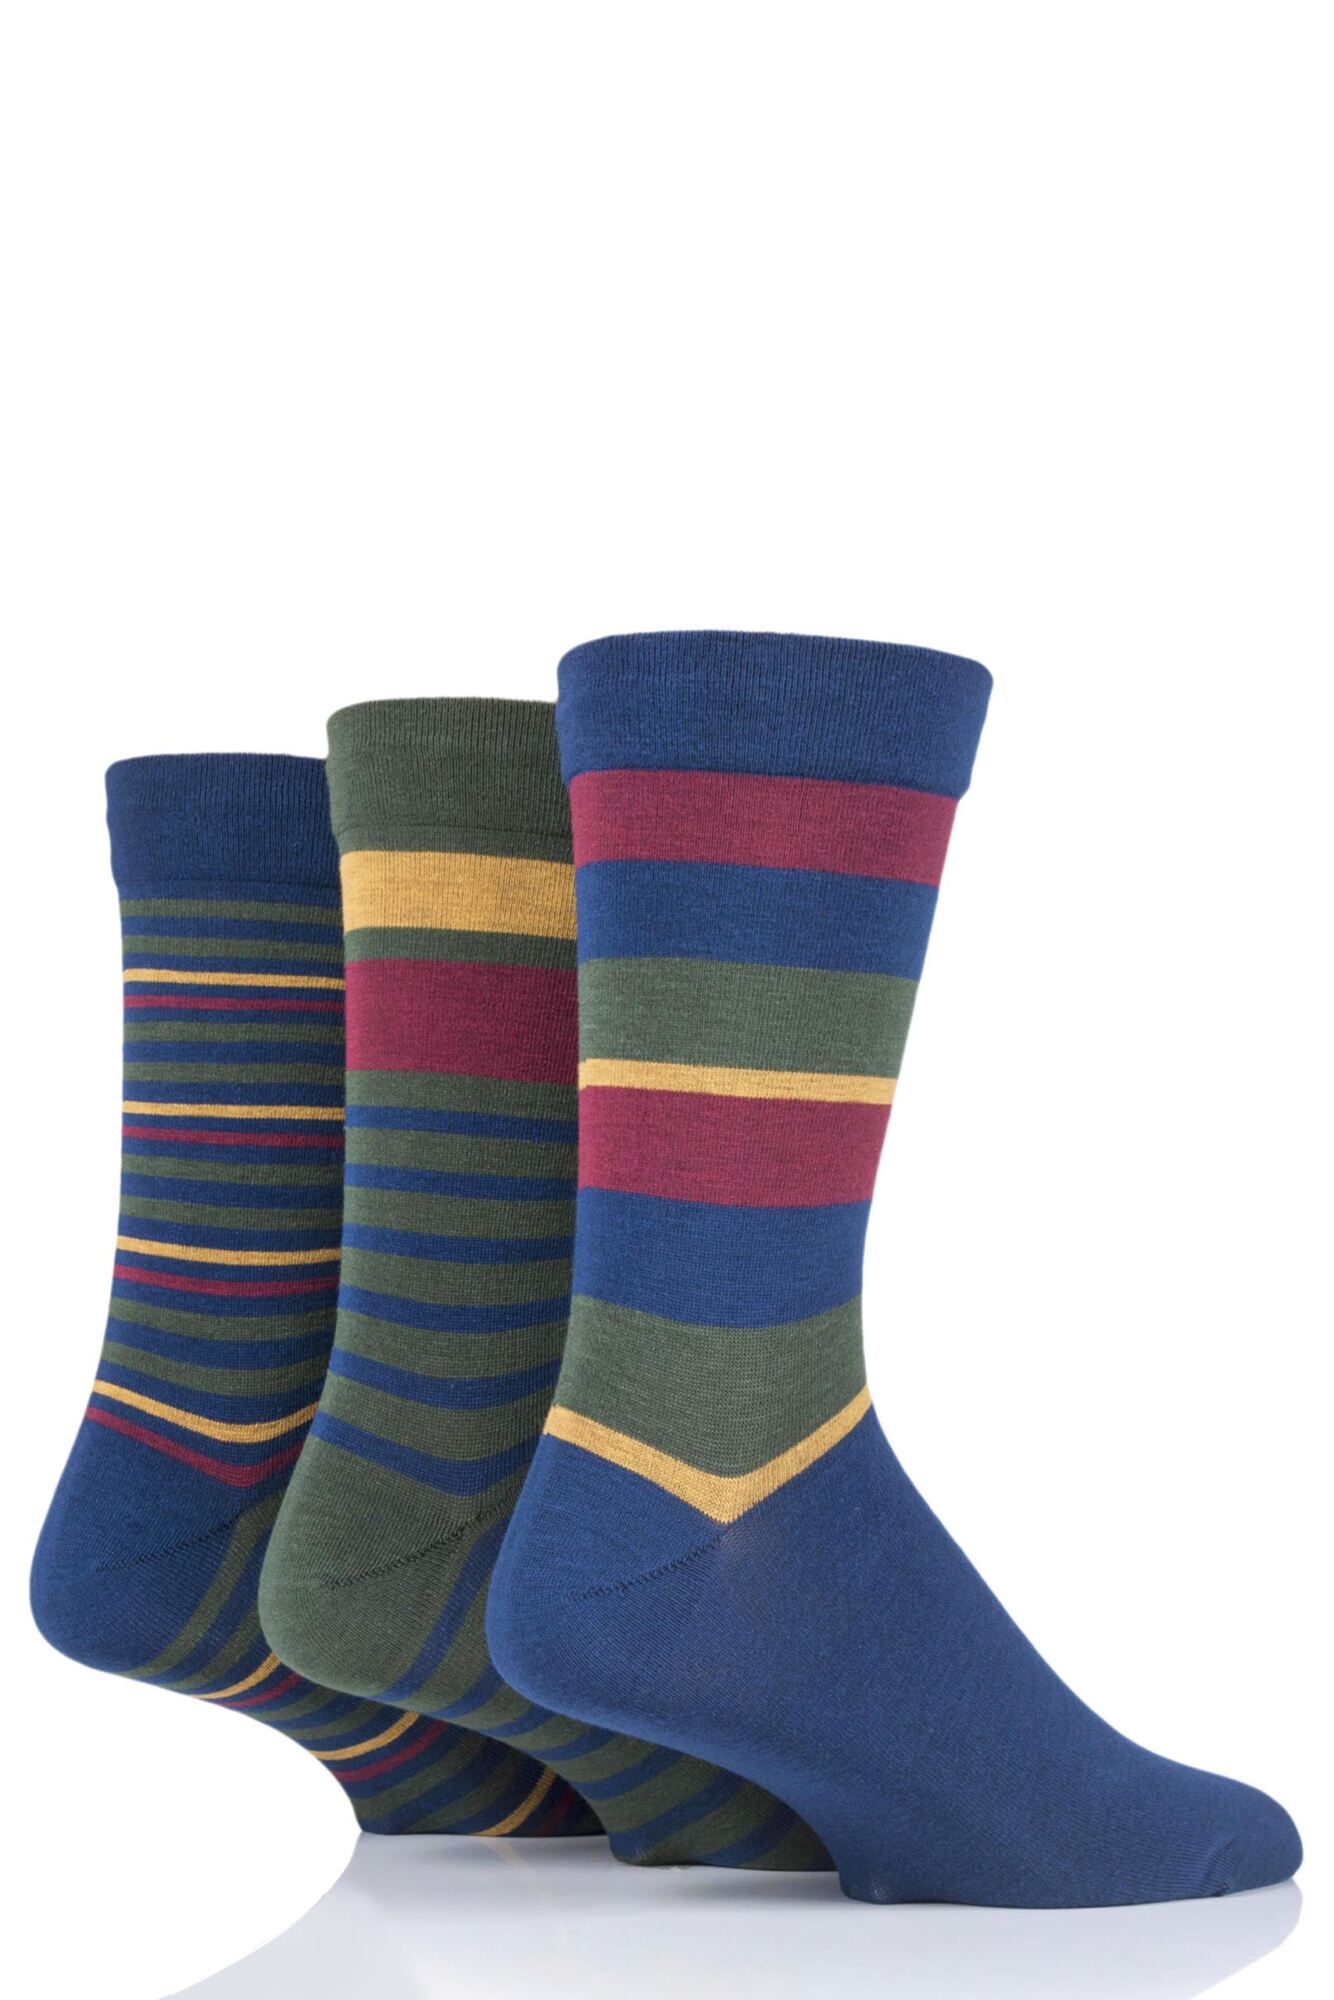 3 Pair Comfort Cuff Gentle Bamboo Striped Socks with Smooth Toe Seams Men's - SOCKSHOP